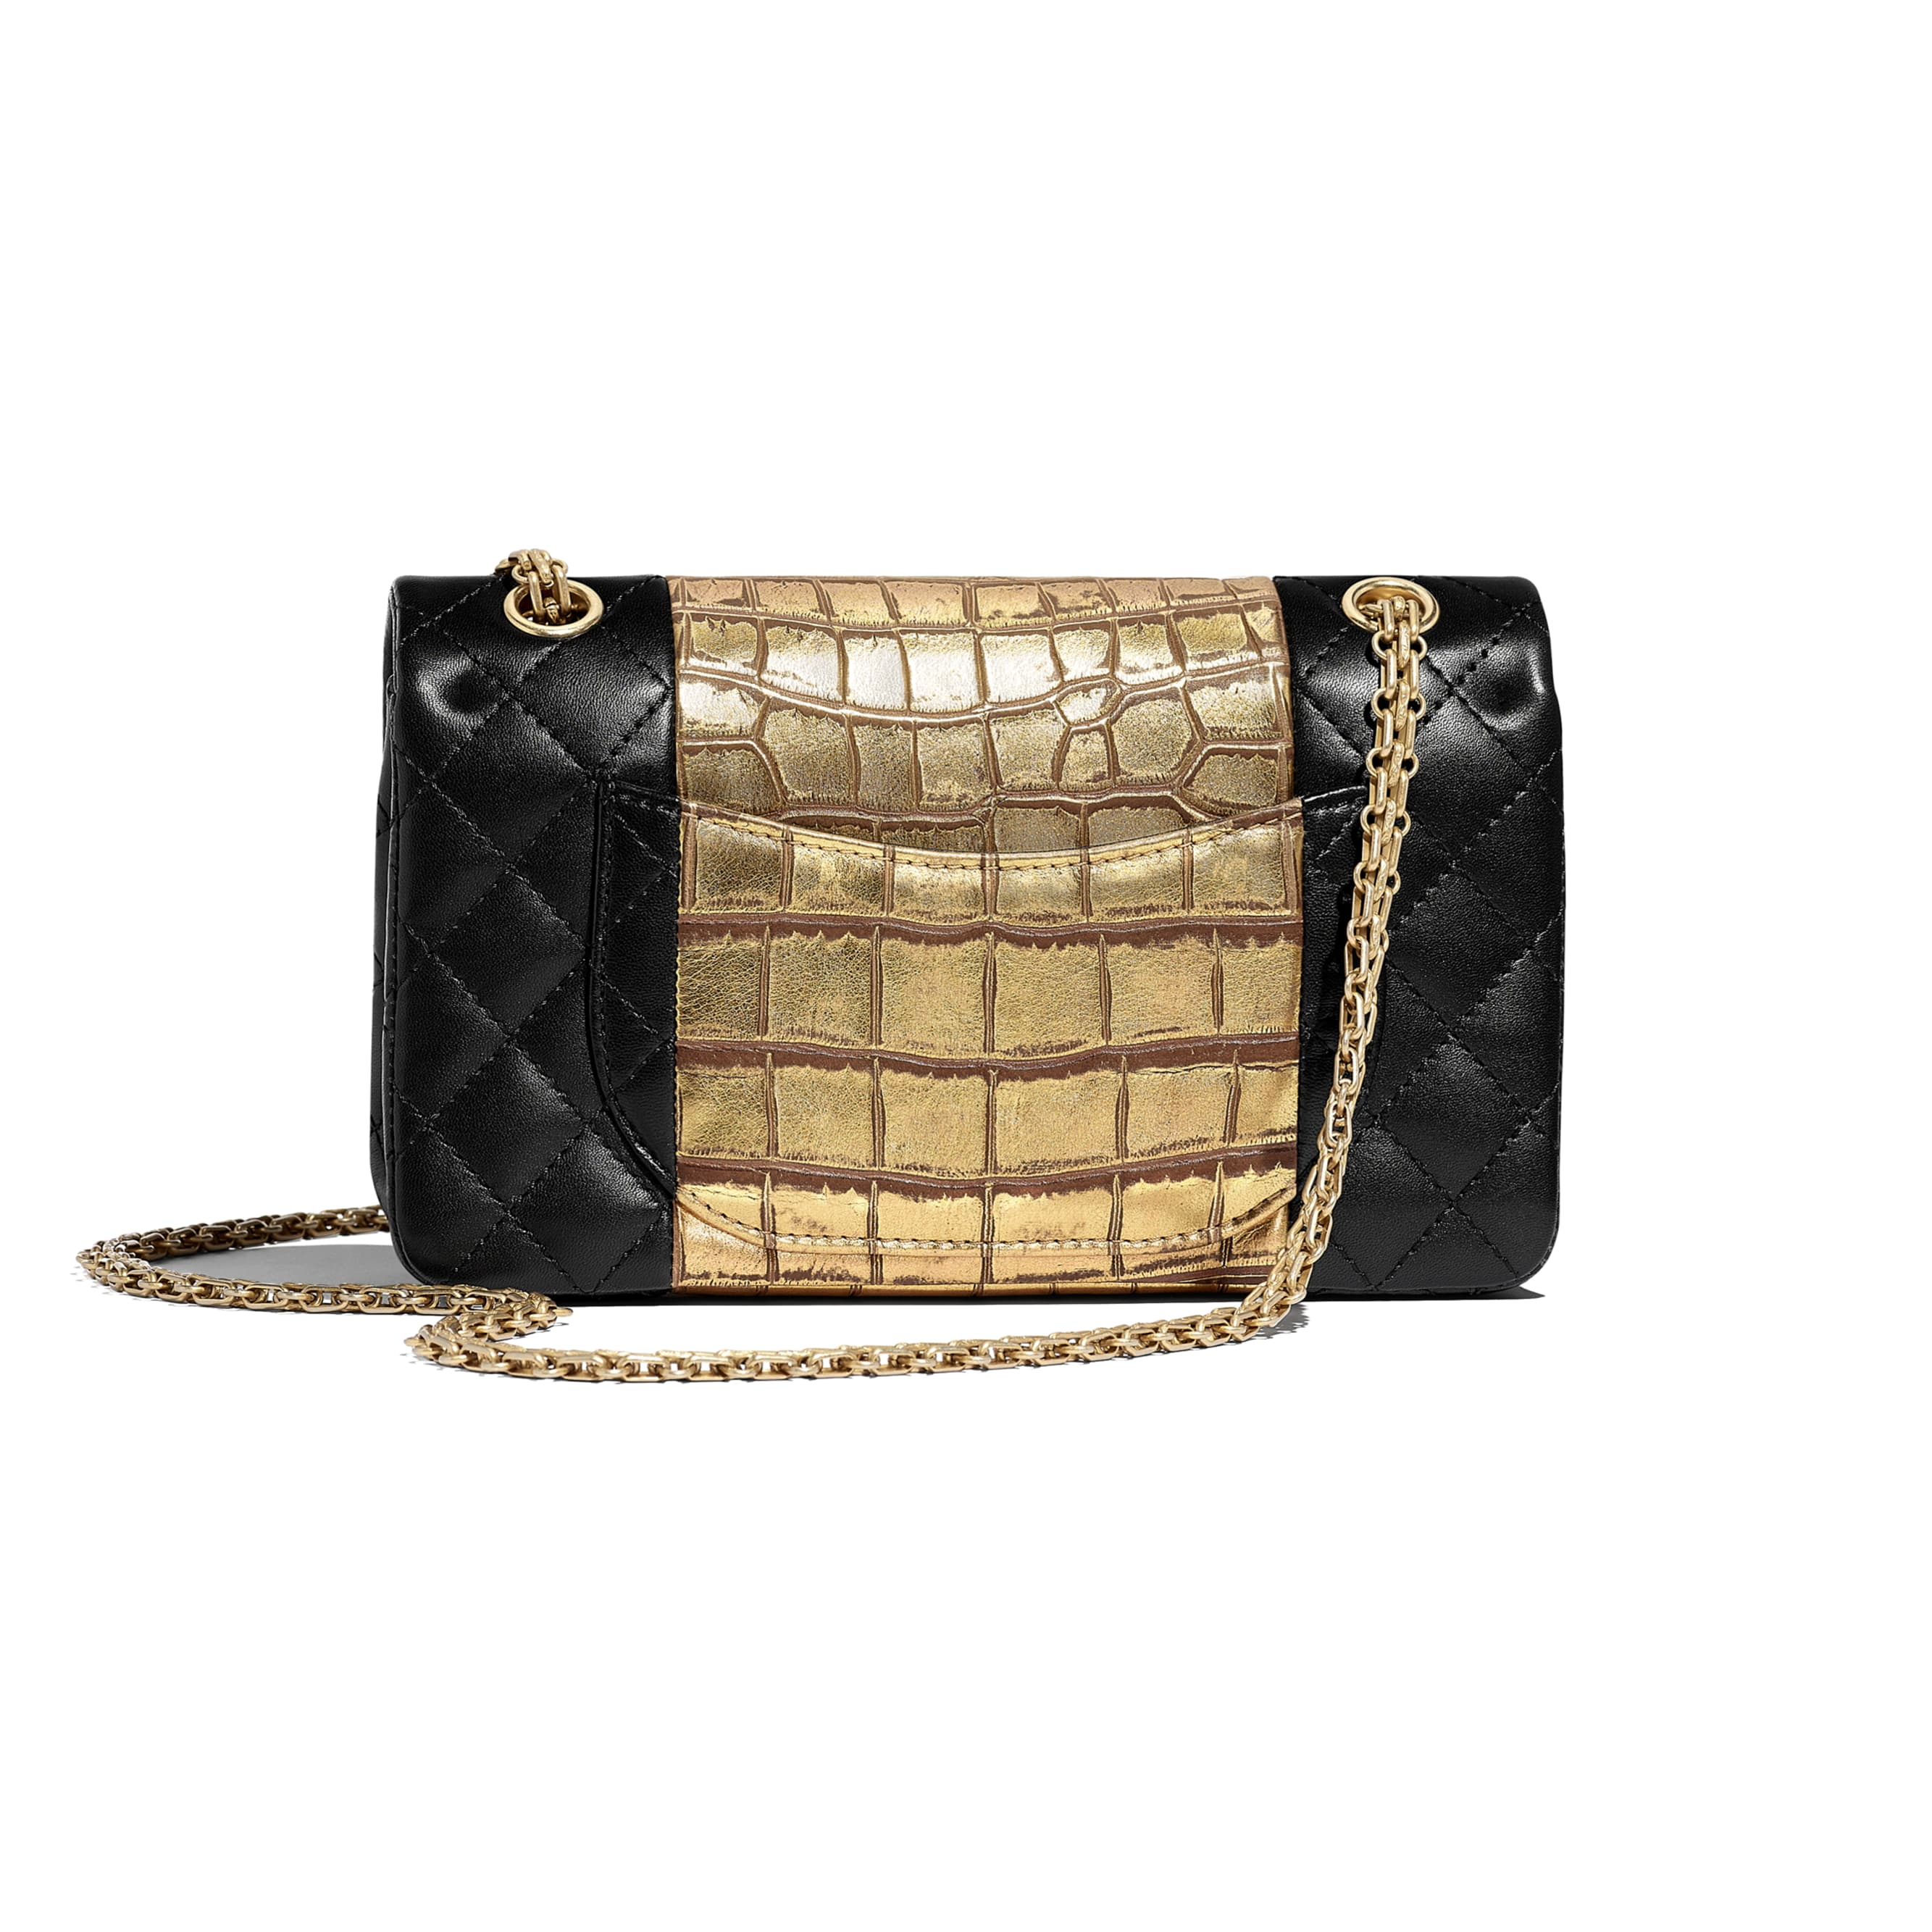 2.55 Handbag - Black & Gold - Lambskin, Crocodile Embossed Calfskin & Gold-Tone Metal - Alternative view - see standard sized version